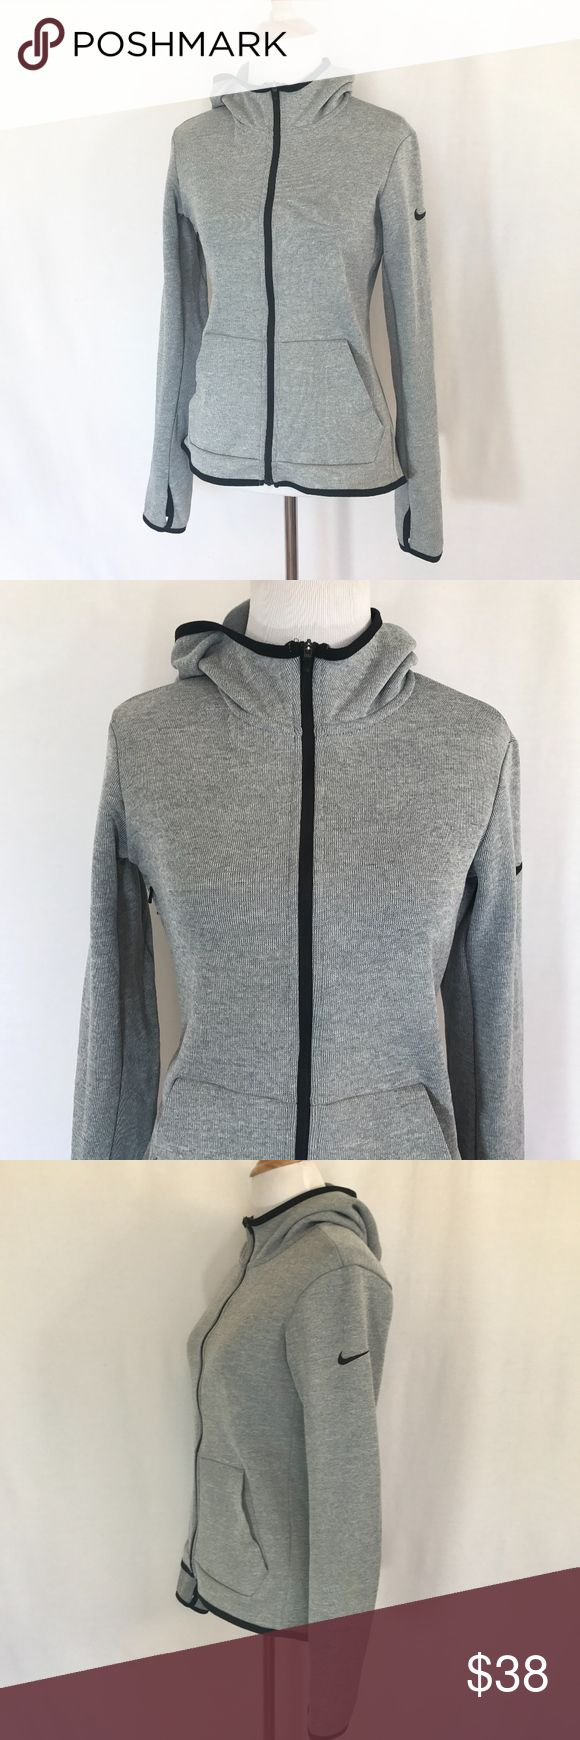 Nike - Therma Dri-Fit Training Hoodie in Gray Excellent condition Nike Womens Therma Training Hoodie.  Offers the warmth of Nike Therma fabric with a water-repellent finish that helps keep you dry in light rain. Nike Therma fabric helps manage your bodys natural heat to keep you warm.  Water-repellent finish helps to keep you dry. Underarm gusset offers a comfortable range of motion. Full-front zipper for easy on and off. Thumbholes at the sleeve cuffs enhance coverage. Front kangaroo…